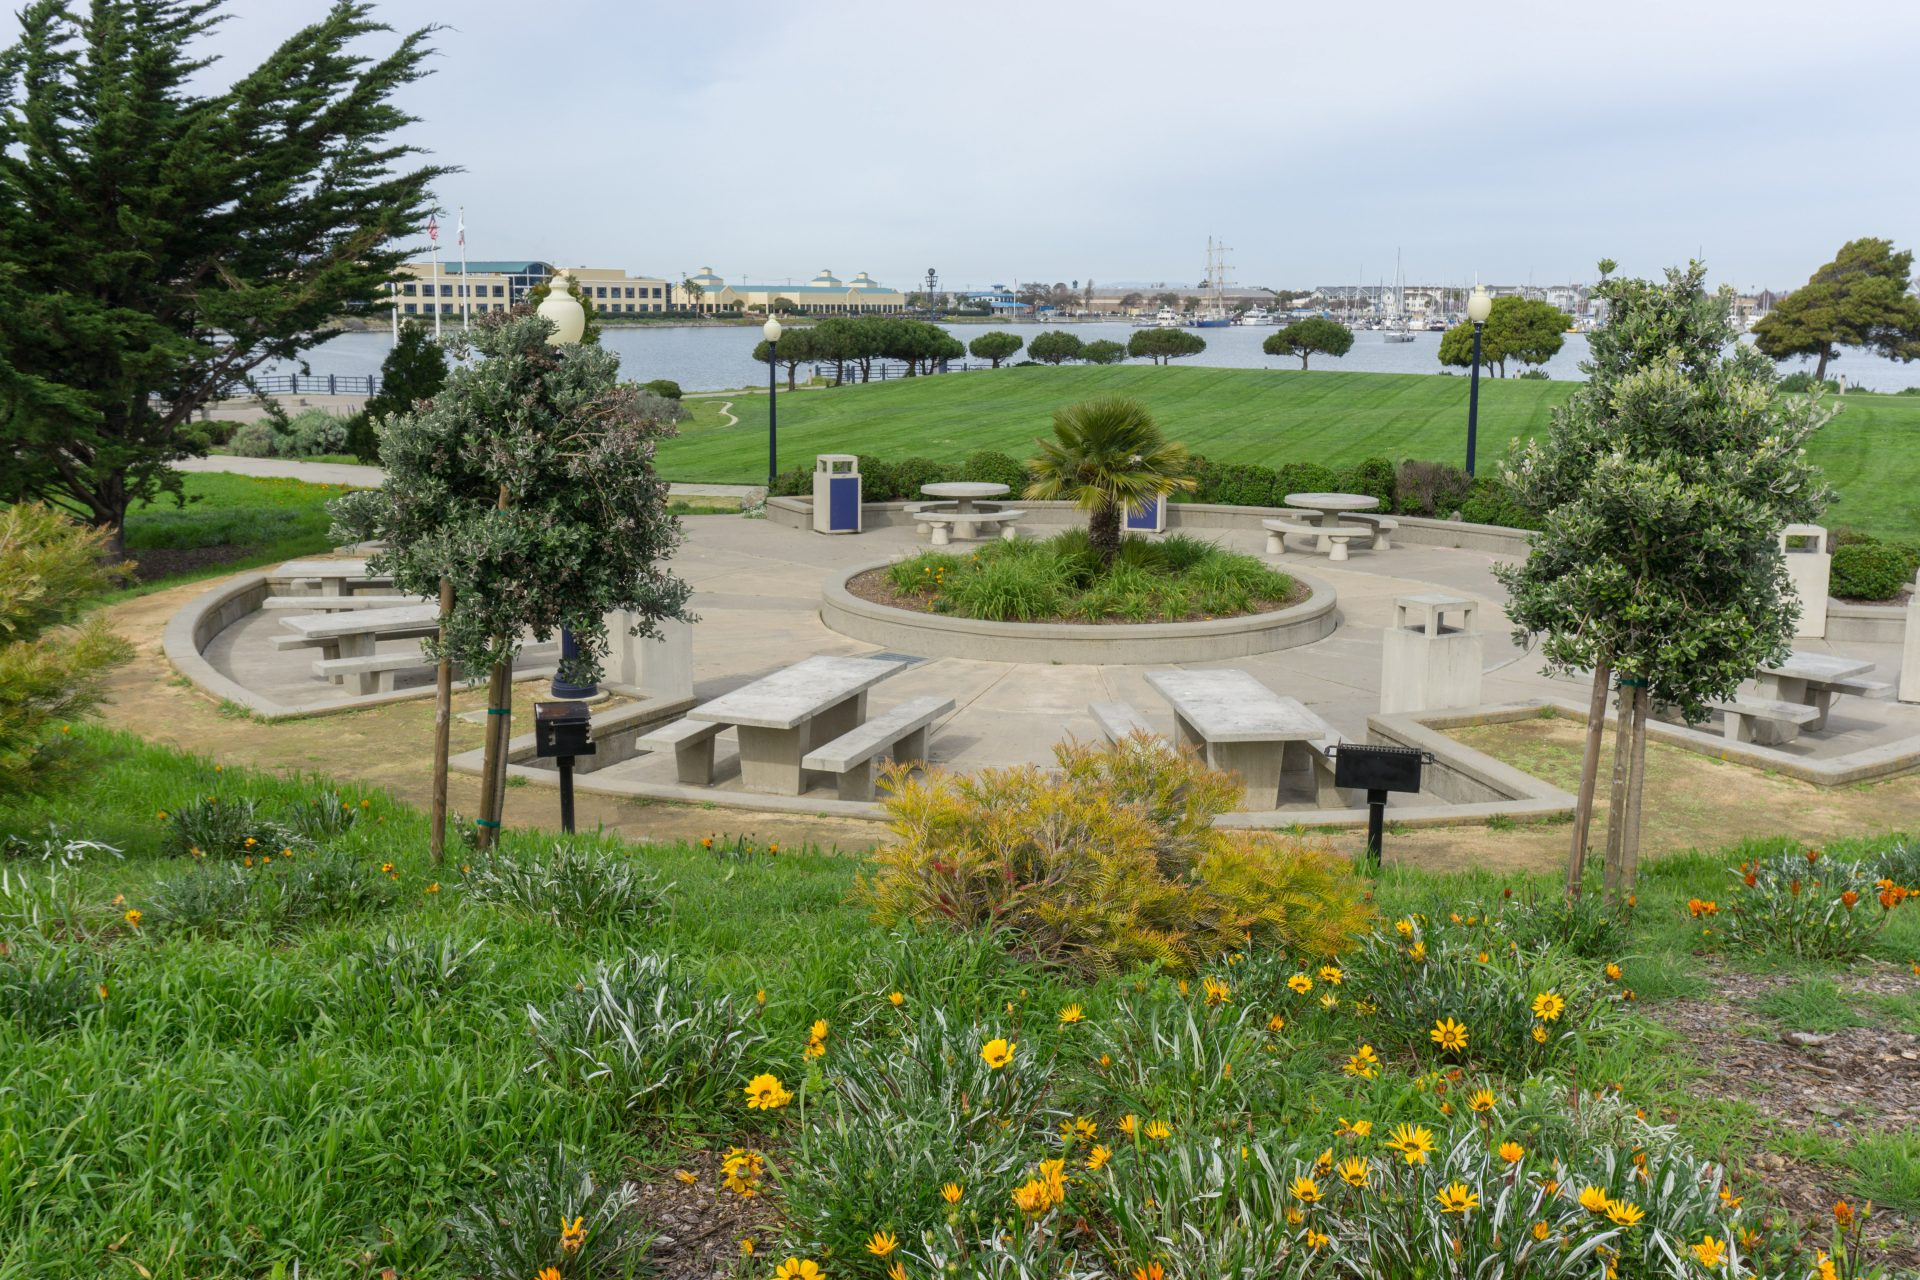 View of flowers surrounding circle of large concrete picnic benches